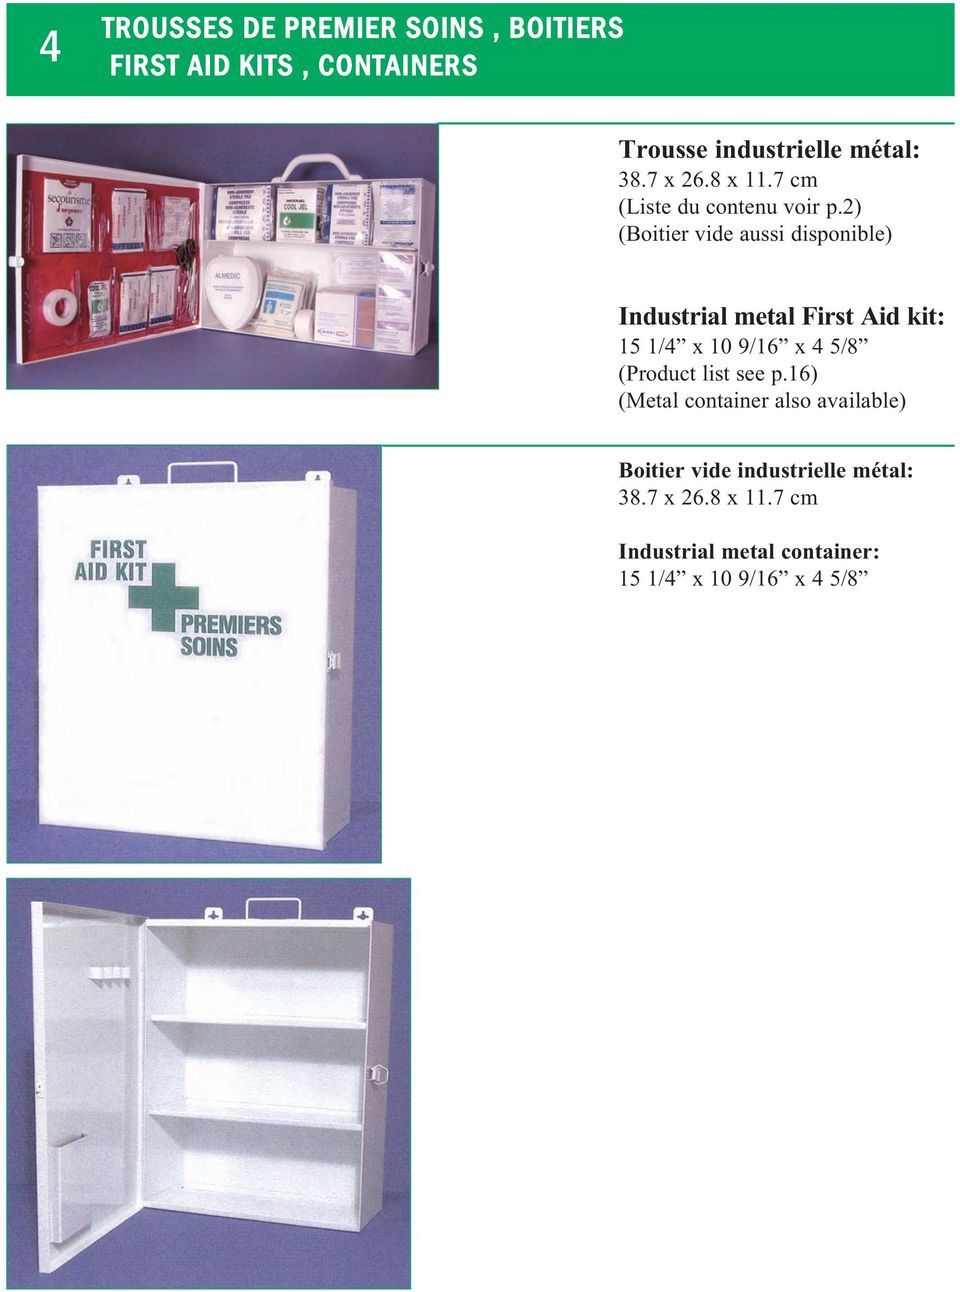 2) (Boitier vide aussi disponible) Industrial metal First Aid kit: 15 1/4 x 10 9/16 x 4 5/8